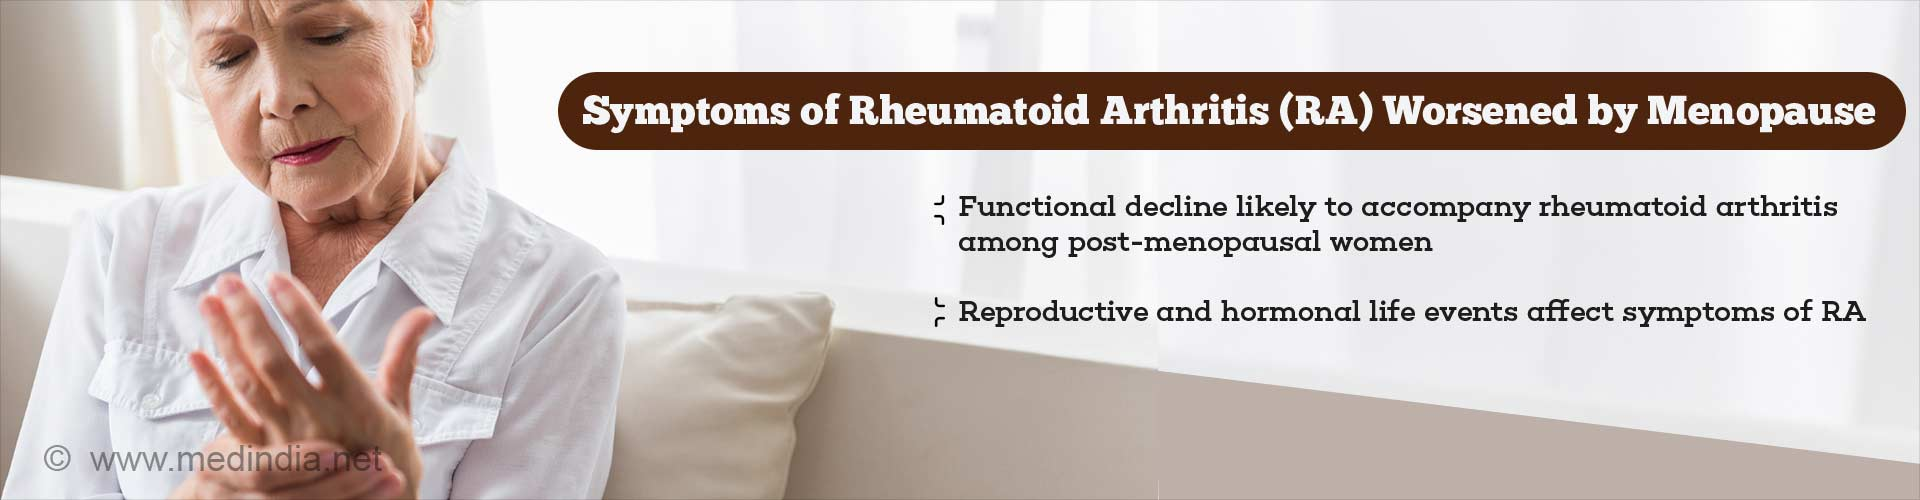 Symptoms of Rheumatoid Arthritis Worsened by Menopause